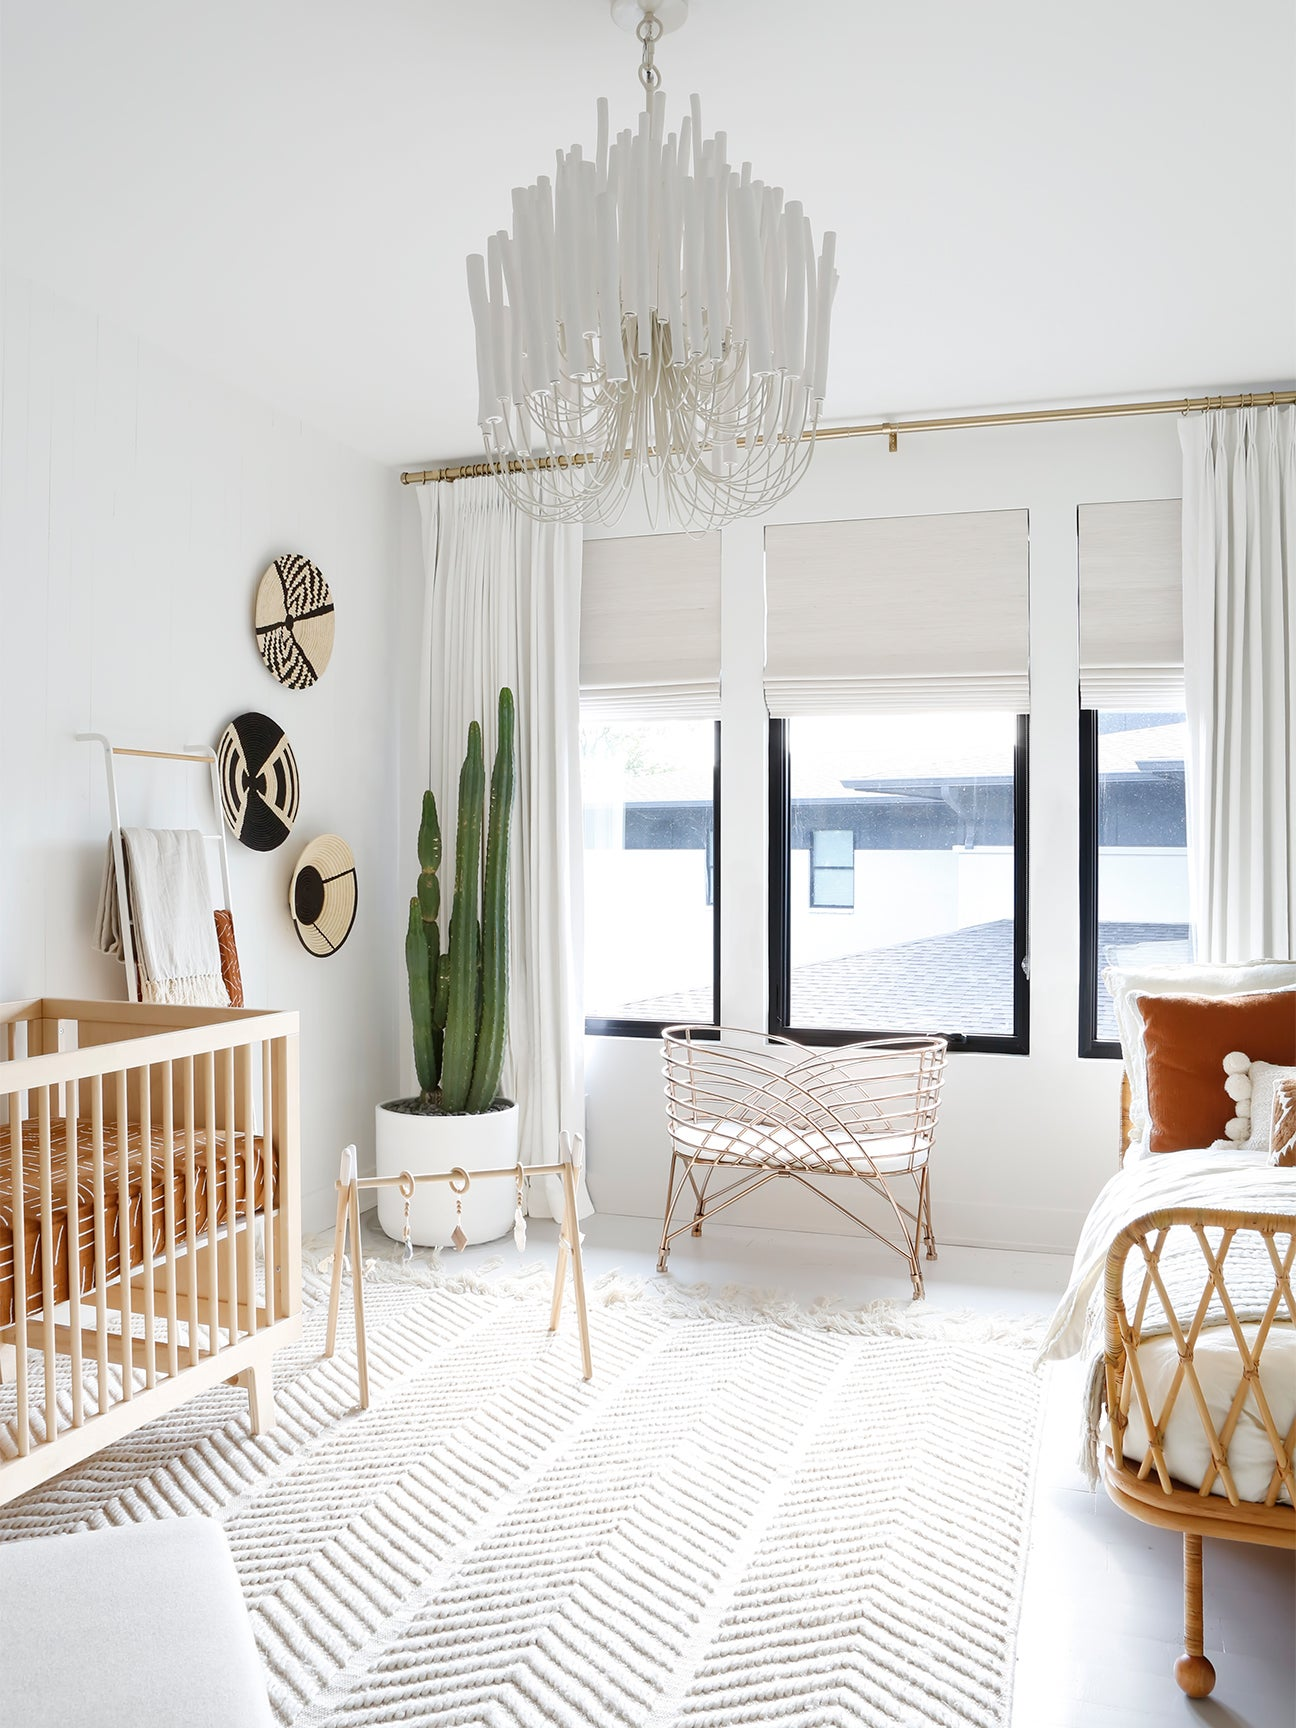 wide shot of zen, white nursery with a crib and bed